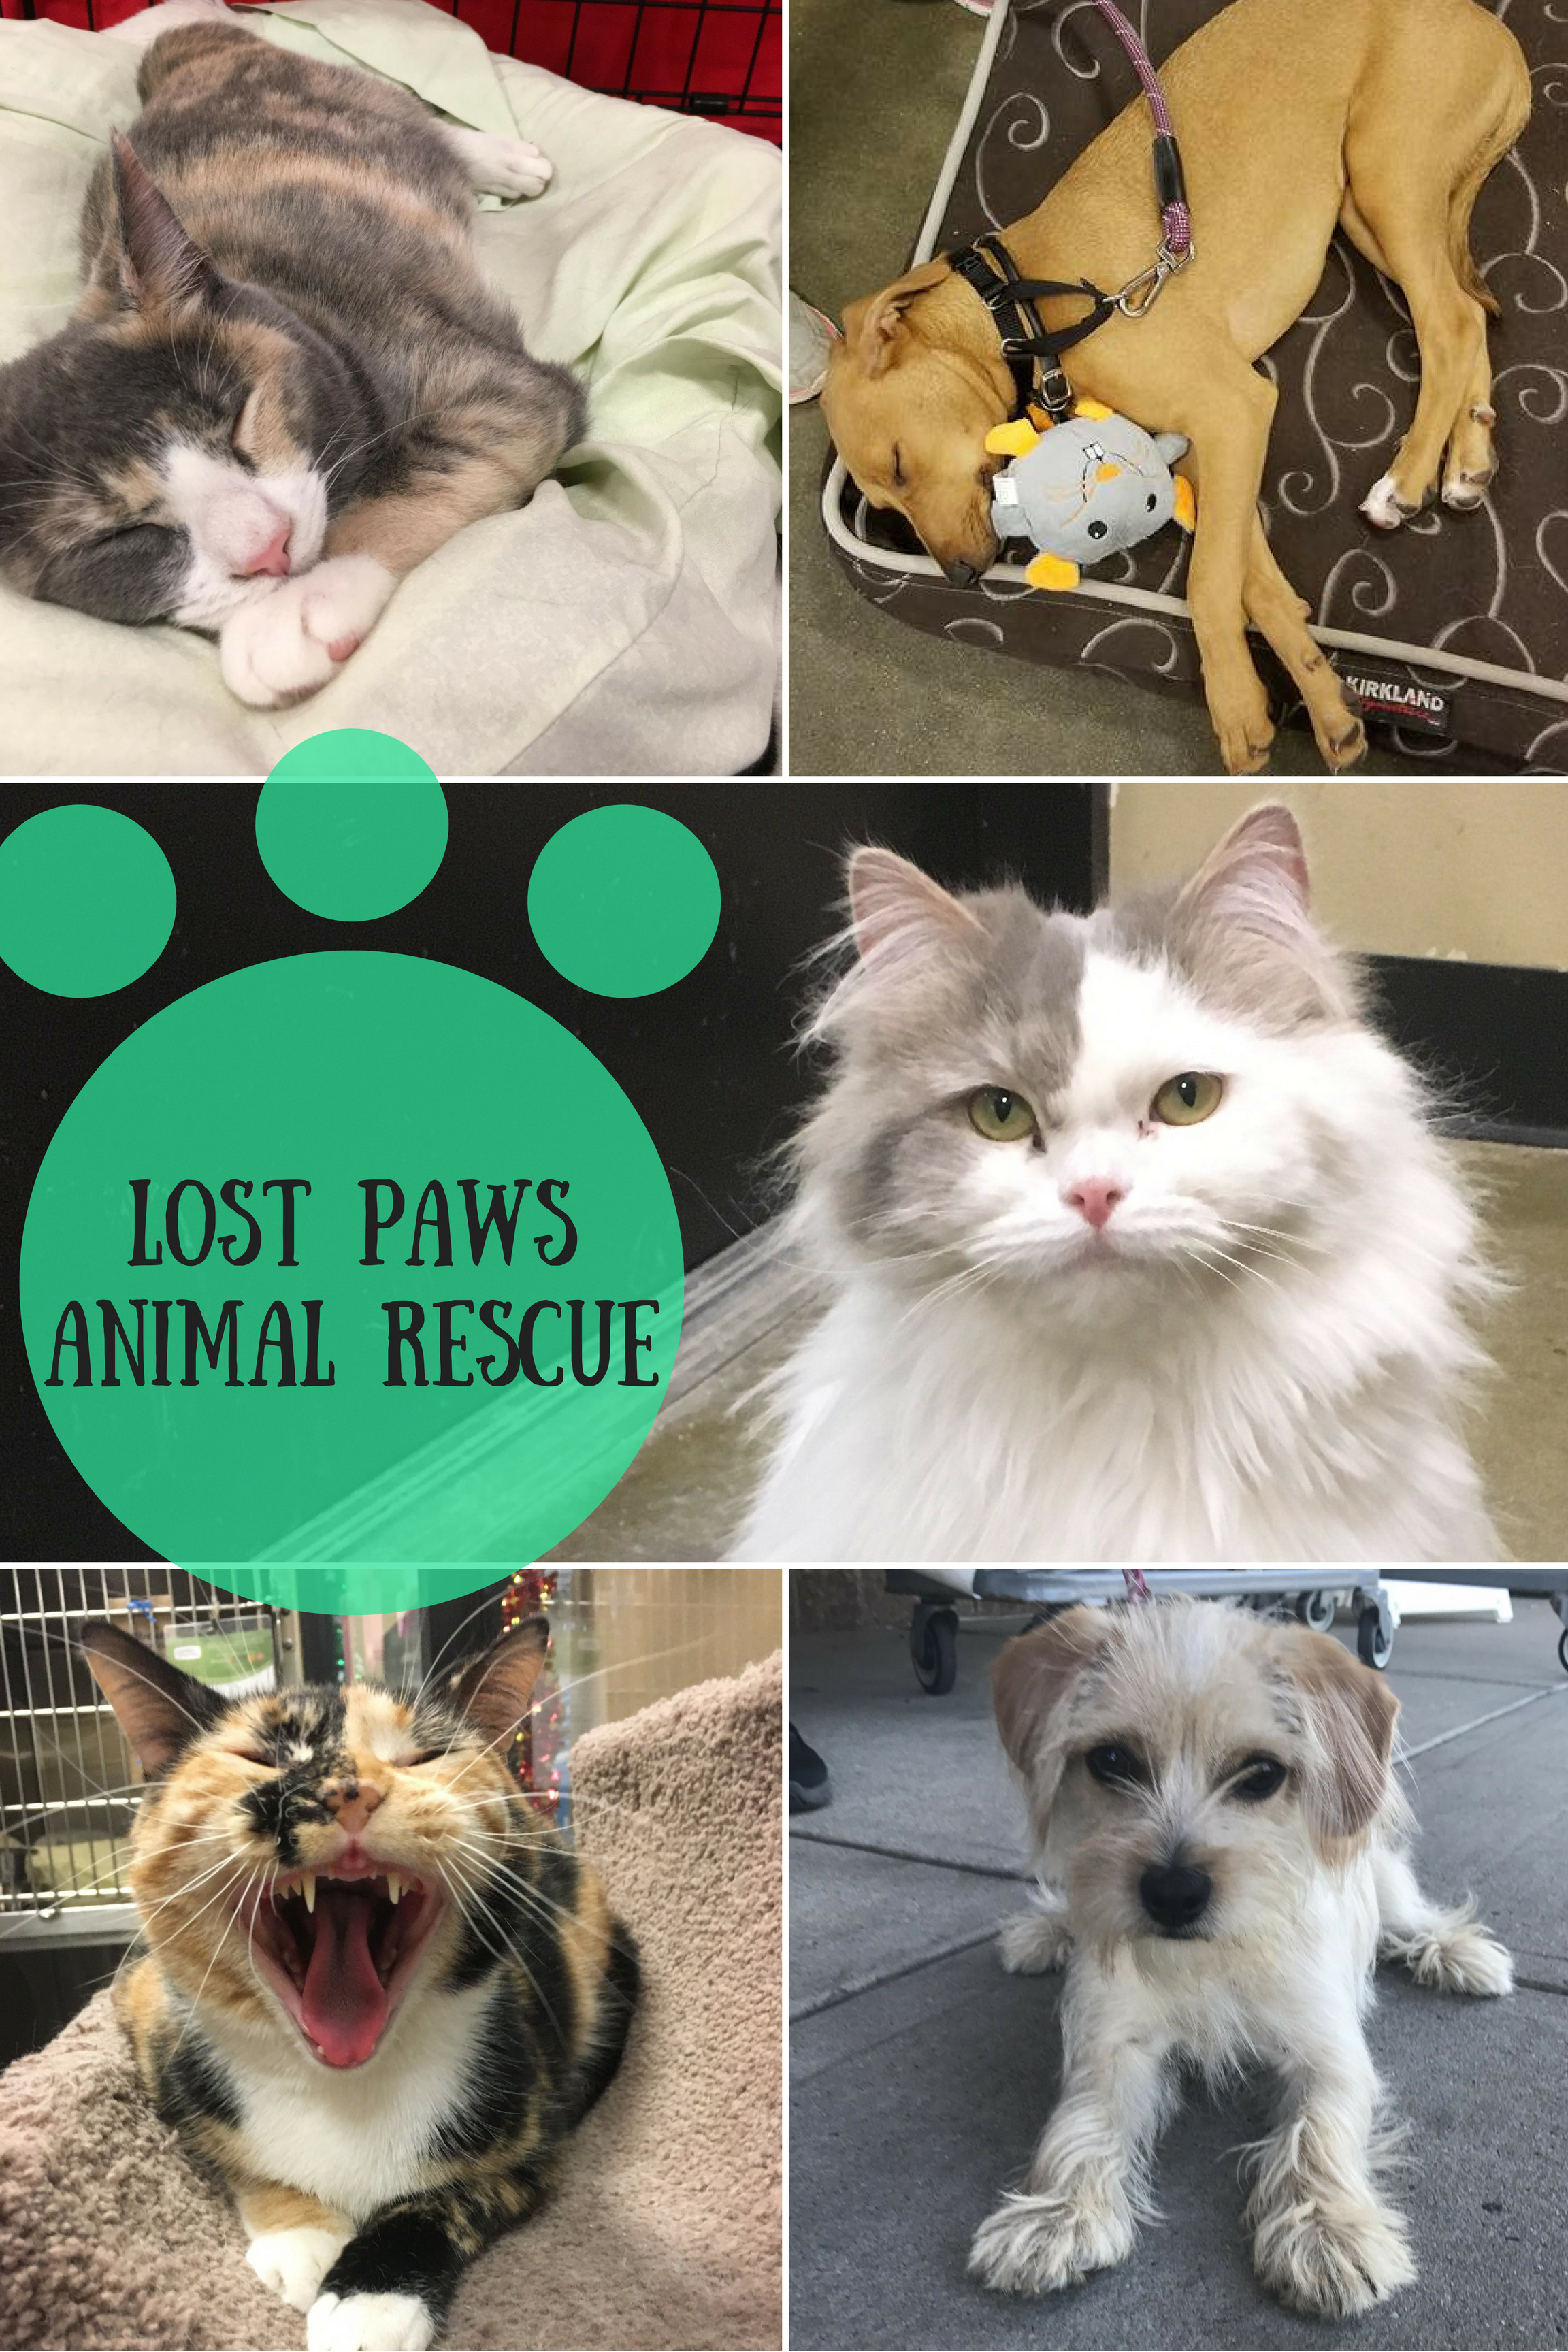 Lost Paws Animal Rescue